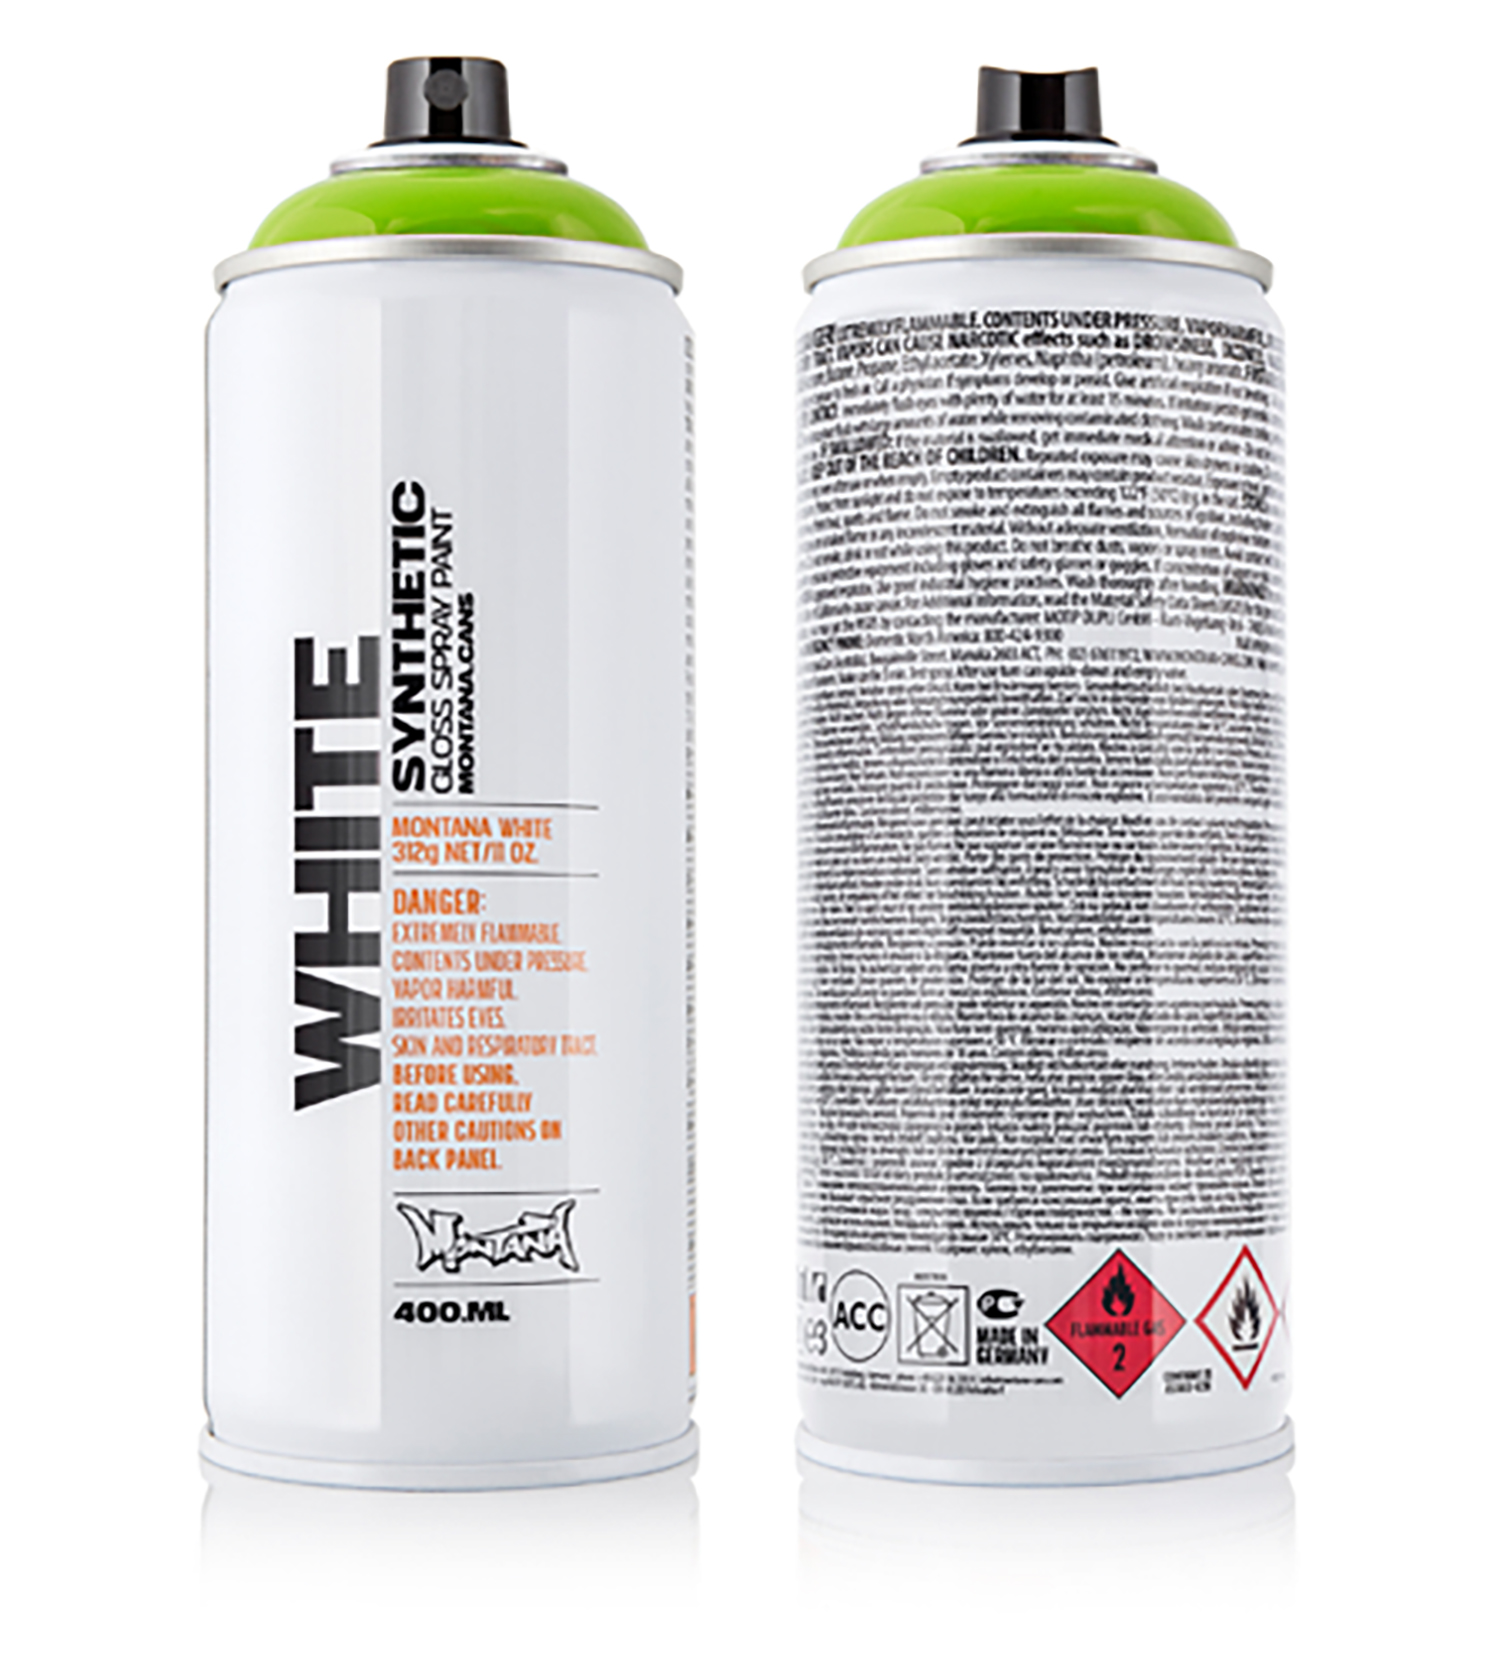 MONTANA-WHITE-SPRAY-400ML-6020